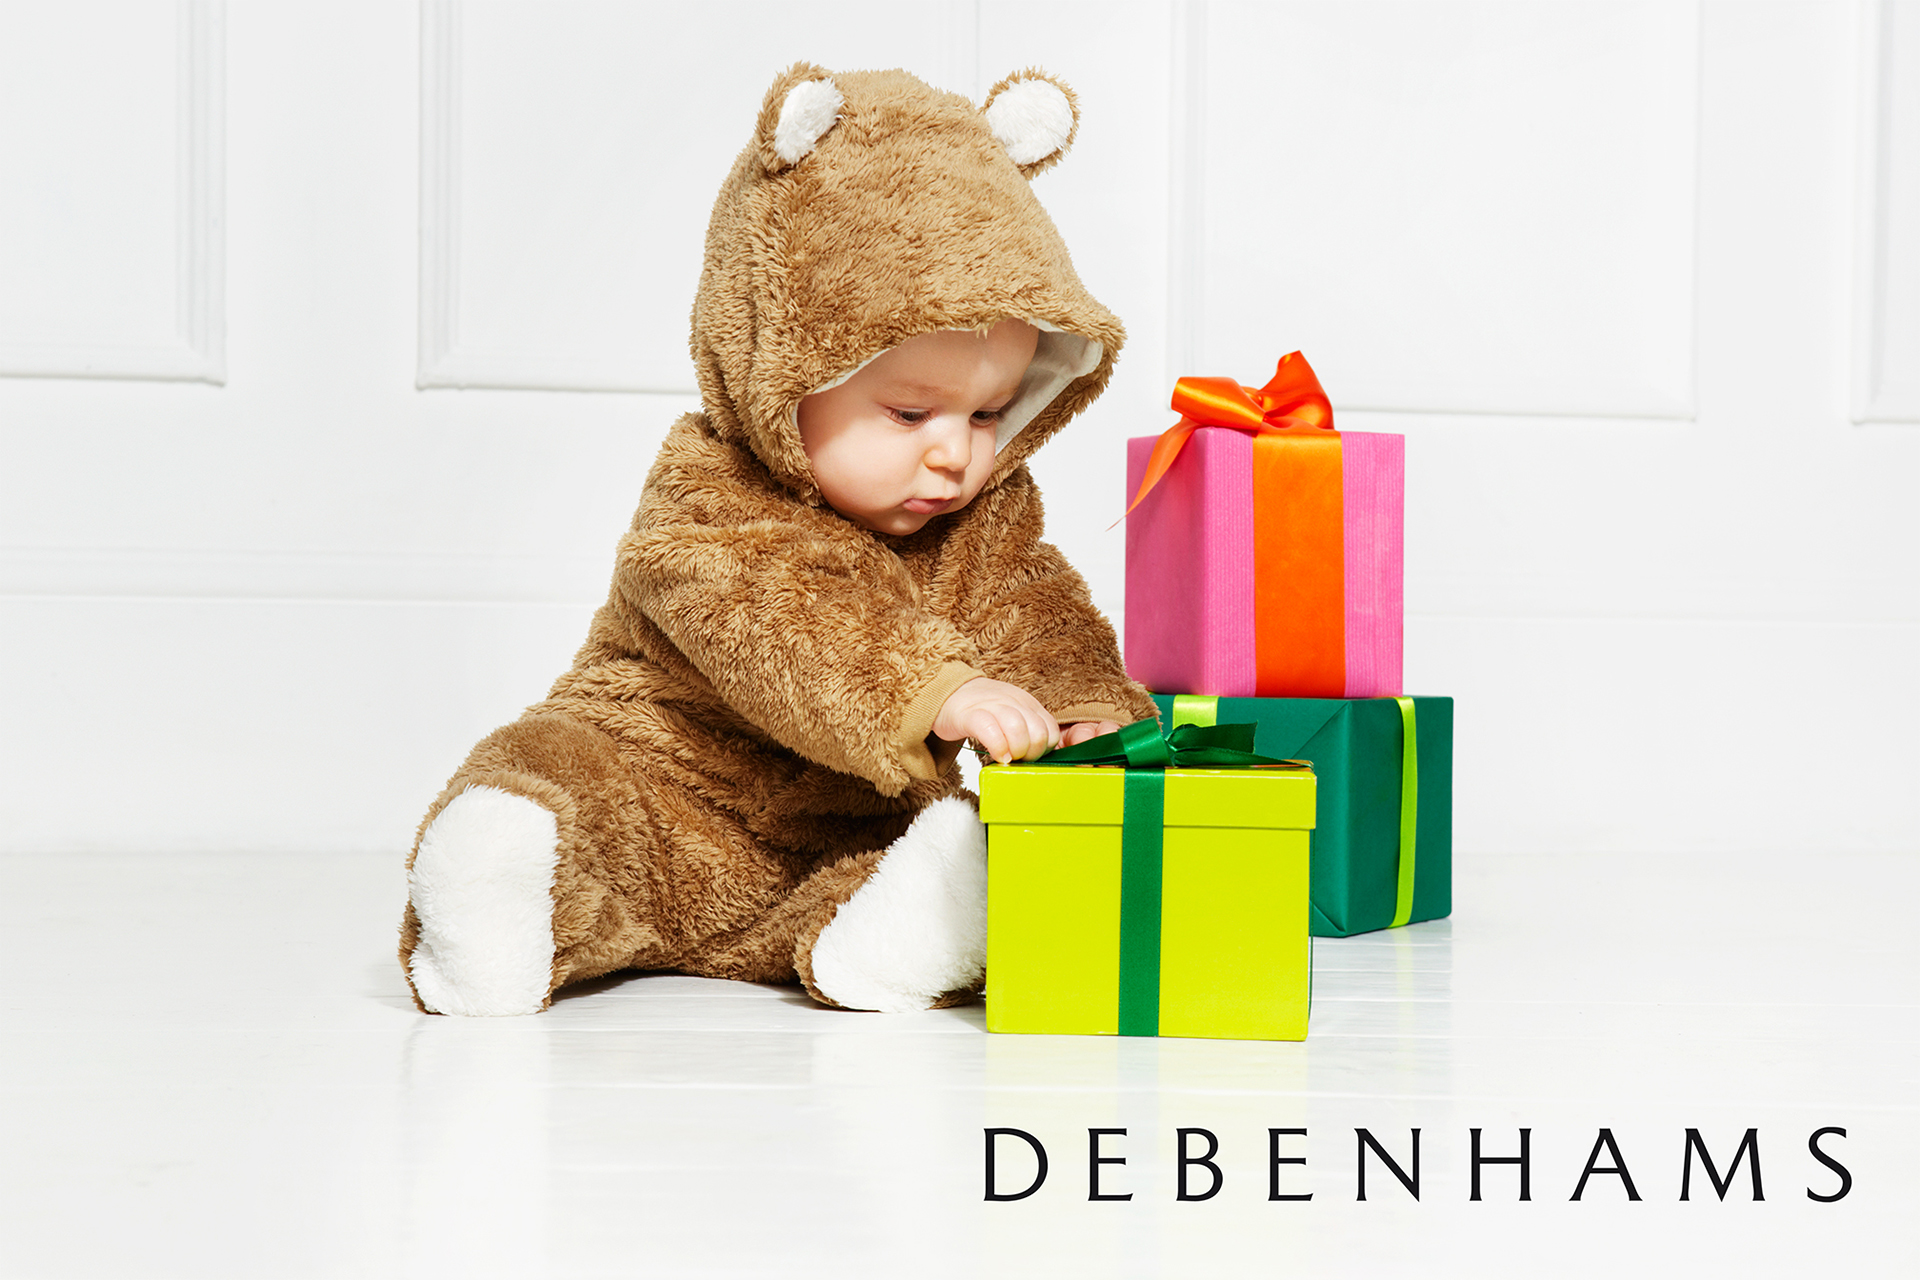 Debenhams kids fashion campaign christmas 9